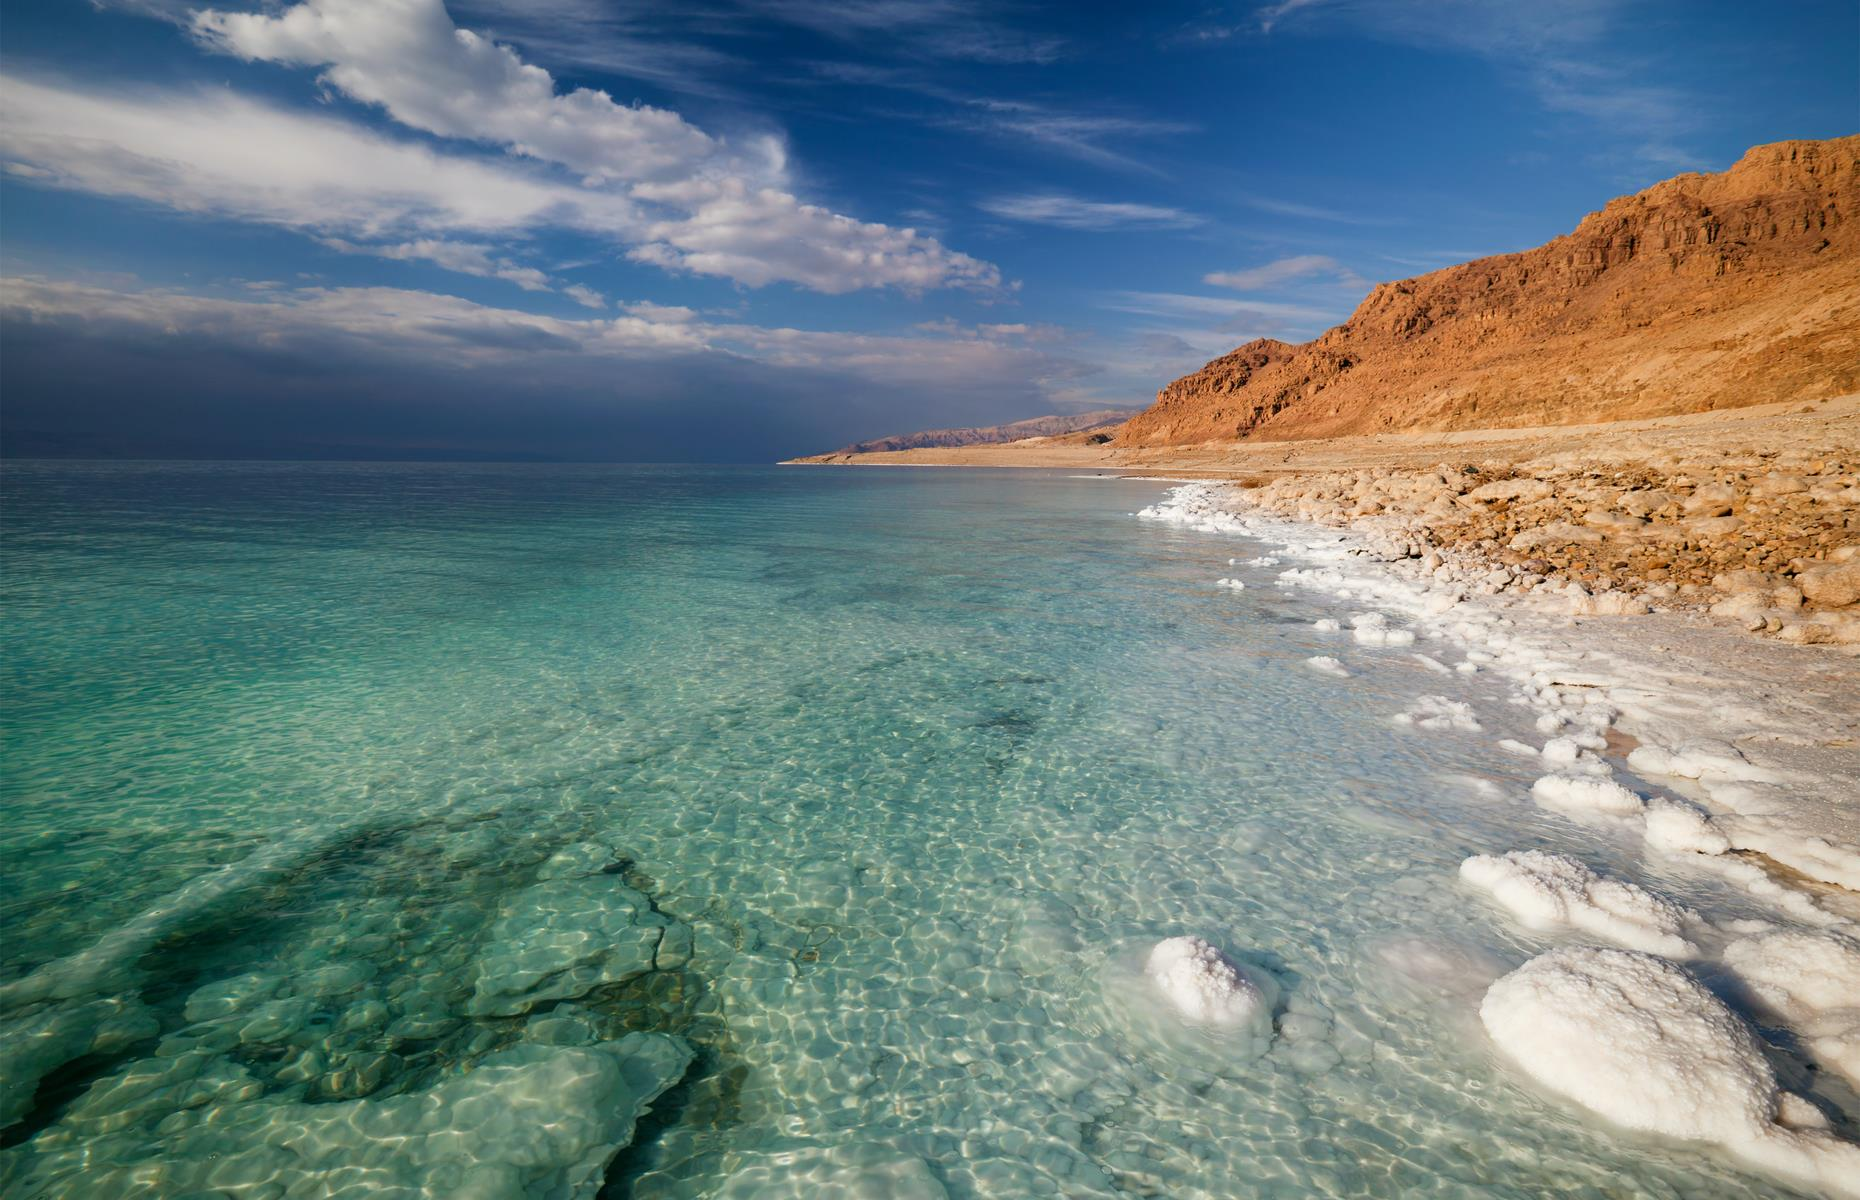 Slide 31 of 36: Bordered by Jordan and Israel, the landlocked Dead Sea is the lowest and saltiest body of water on Earth. However, the sea's buoyant waters are now receding, causing sinkholes to appear. The water level of the Dead Sea is said to be dropping by approximately three feet (1m) a year. About 50 years ago, the Dead Sea covered around 386 square miles (1,000sq km), a level that had been largely constant since records began in the early 18th century. It has now shrunk to around 259 square miles (670sq km).